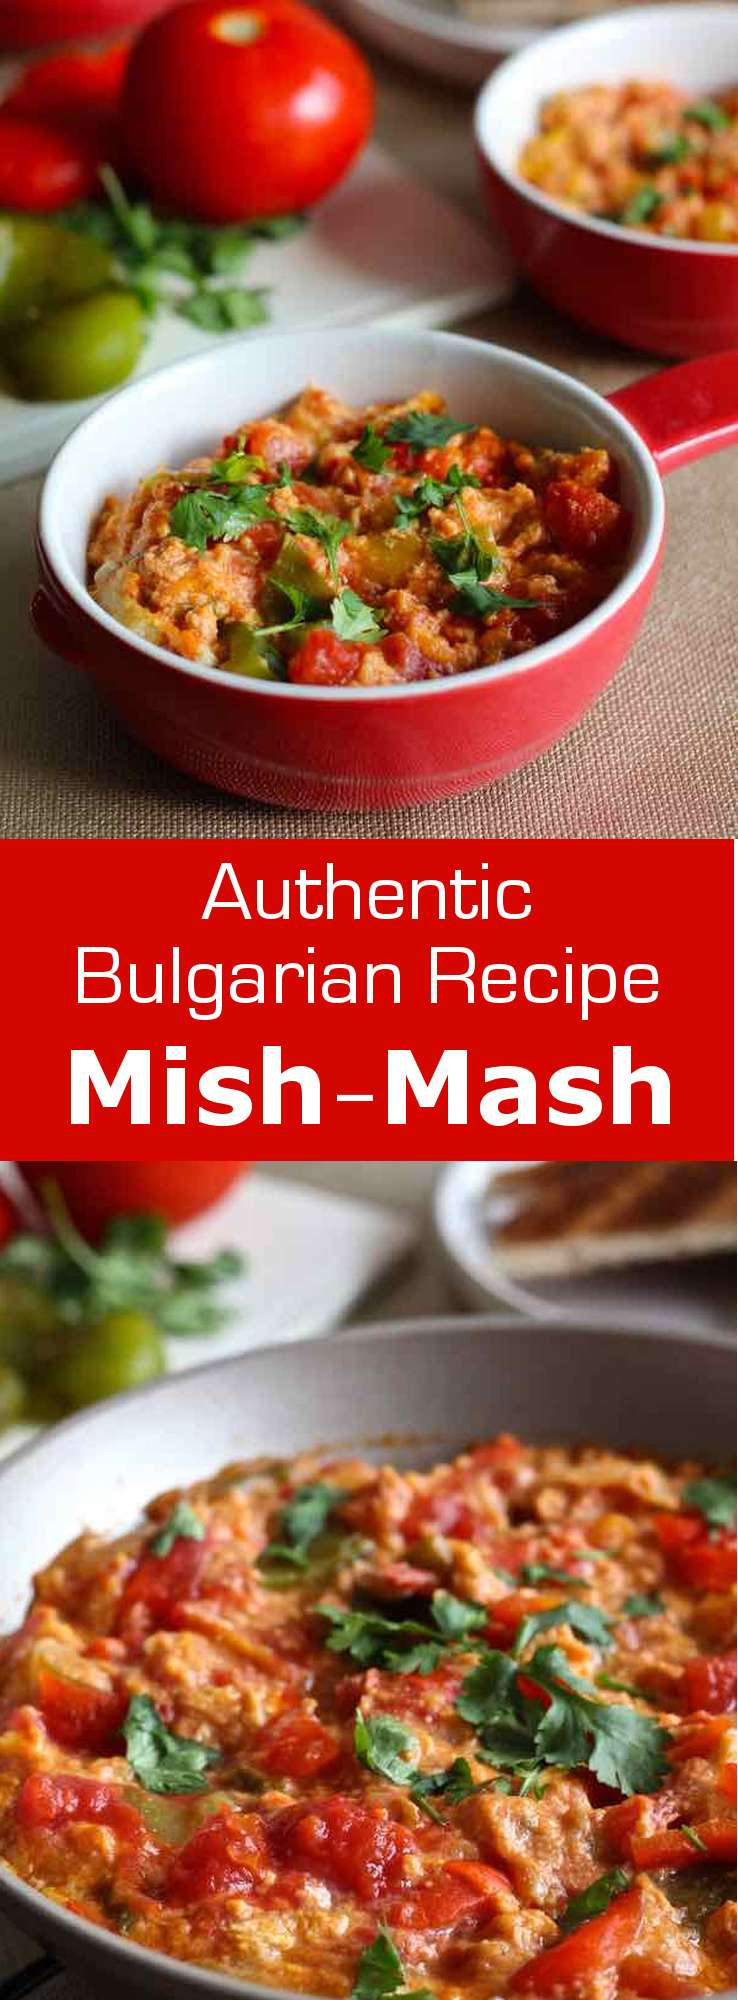 Mish-mash, a delicious omelet with bell peppers, tomatoes and sirene (Bulgarian feta) is the iconic dish of Bulgarian breakfasts. #Bulgaria #Bulgarian #BulgarianCuisine #BulgarianFood #BulgarianRecipe #Salad #WorldCuisine #196flavors